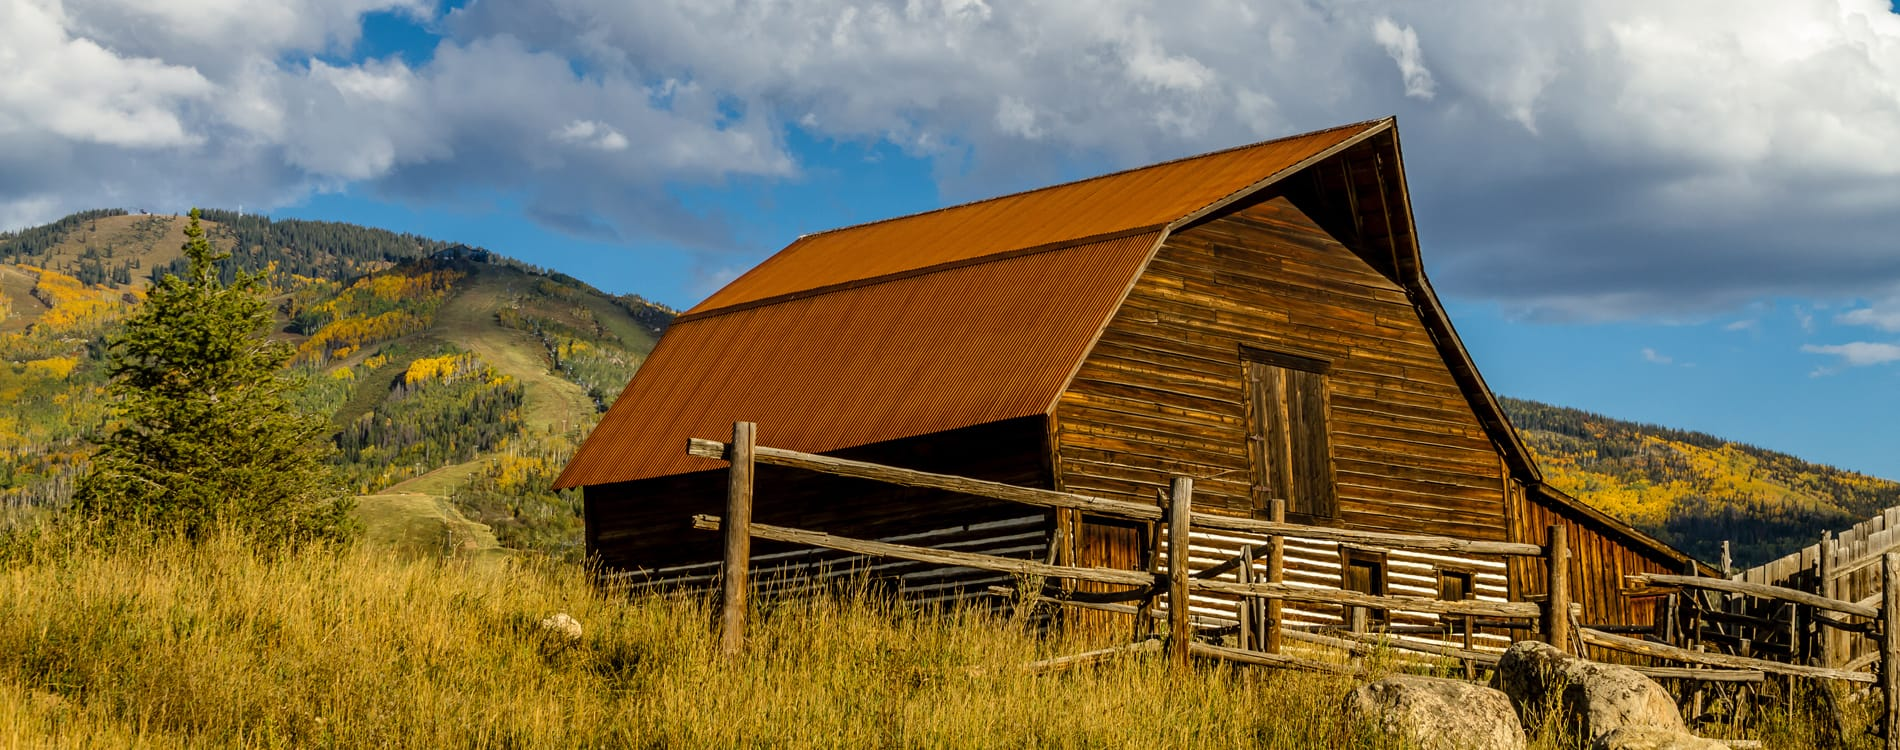 Steamboat Springs, CO - Moore Barn